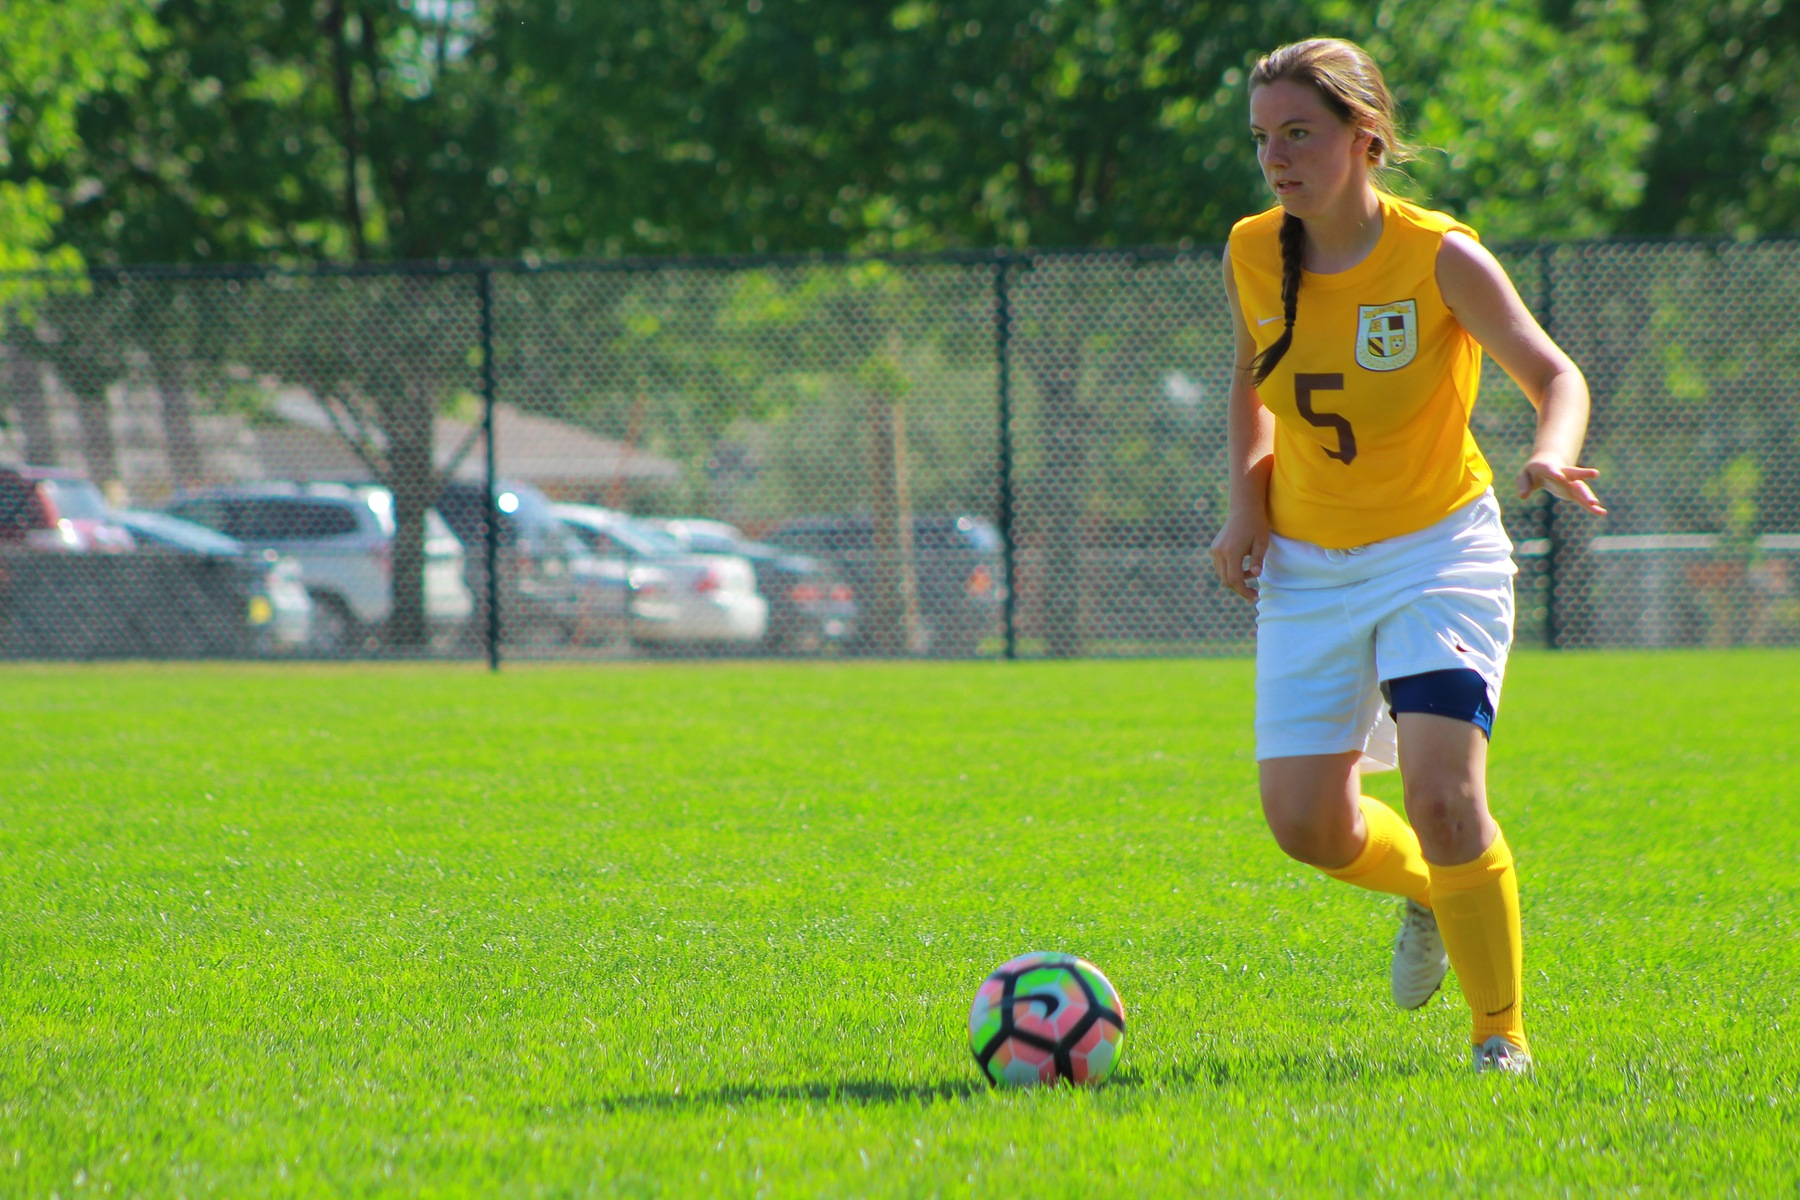 Molleigh Adams-Freund scored the only goal of the game for the Eagles in a 2-1 loss at Bethany Lutheran